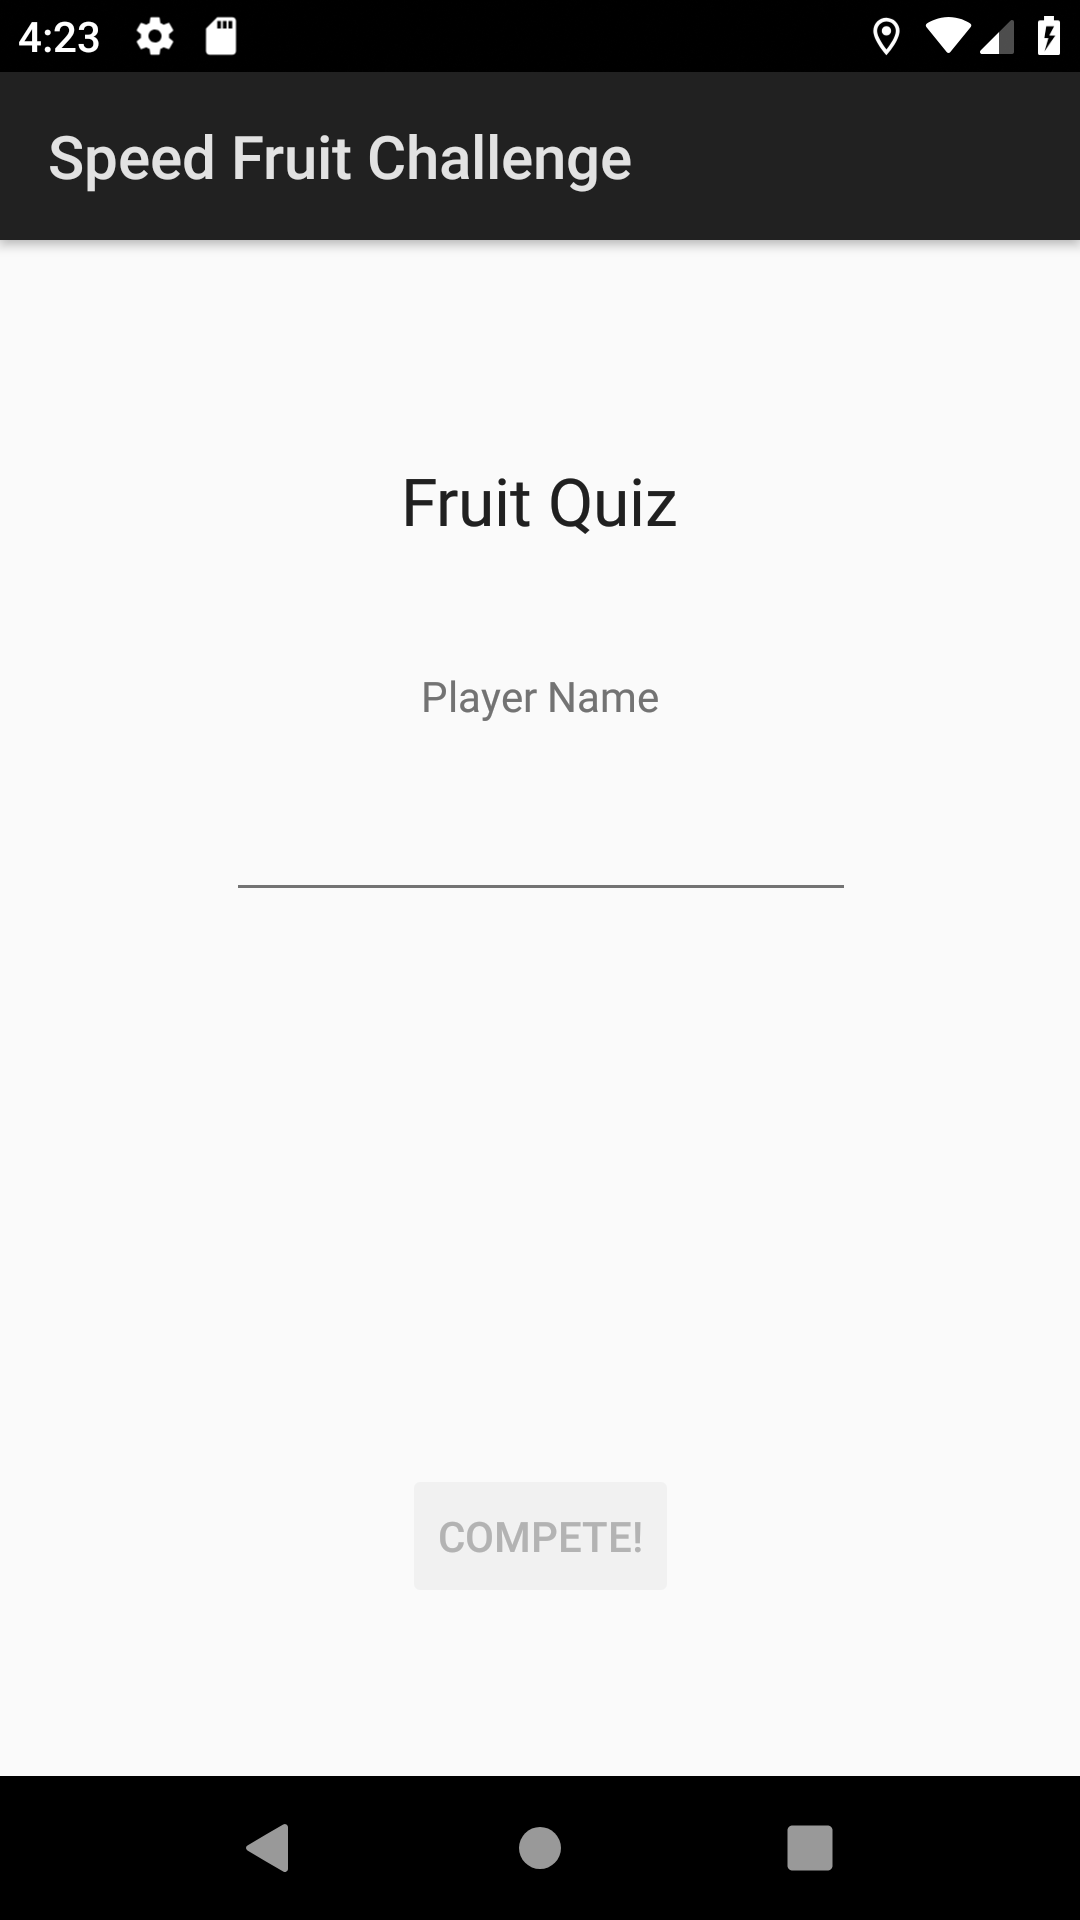 Fruit Quiz Splash Screen